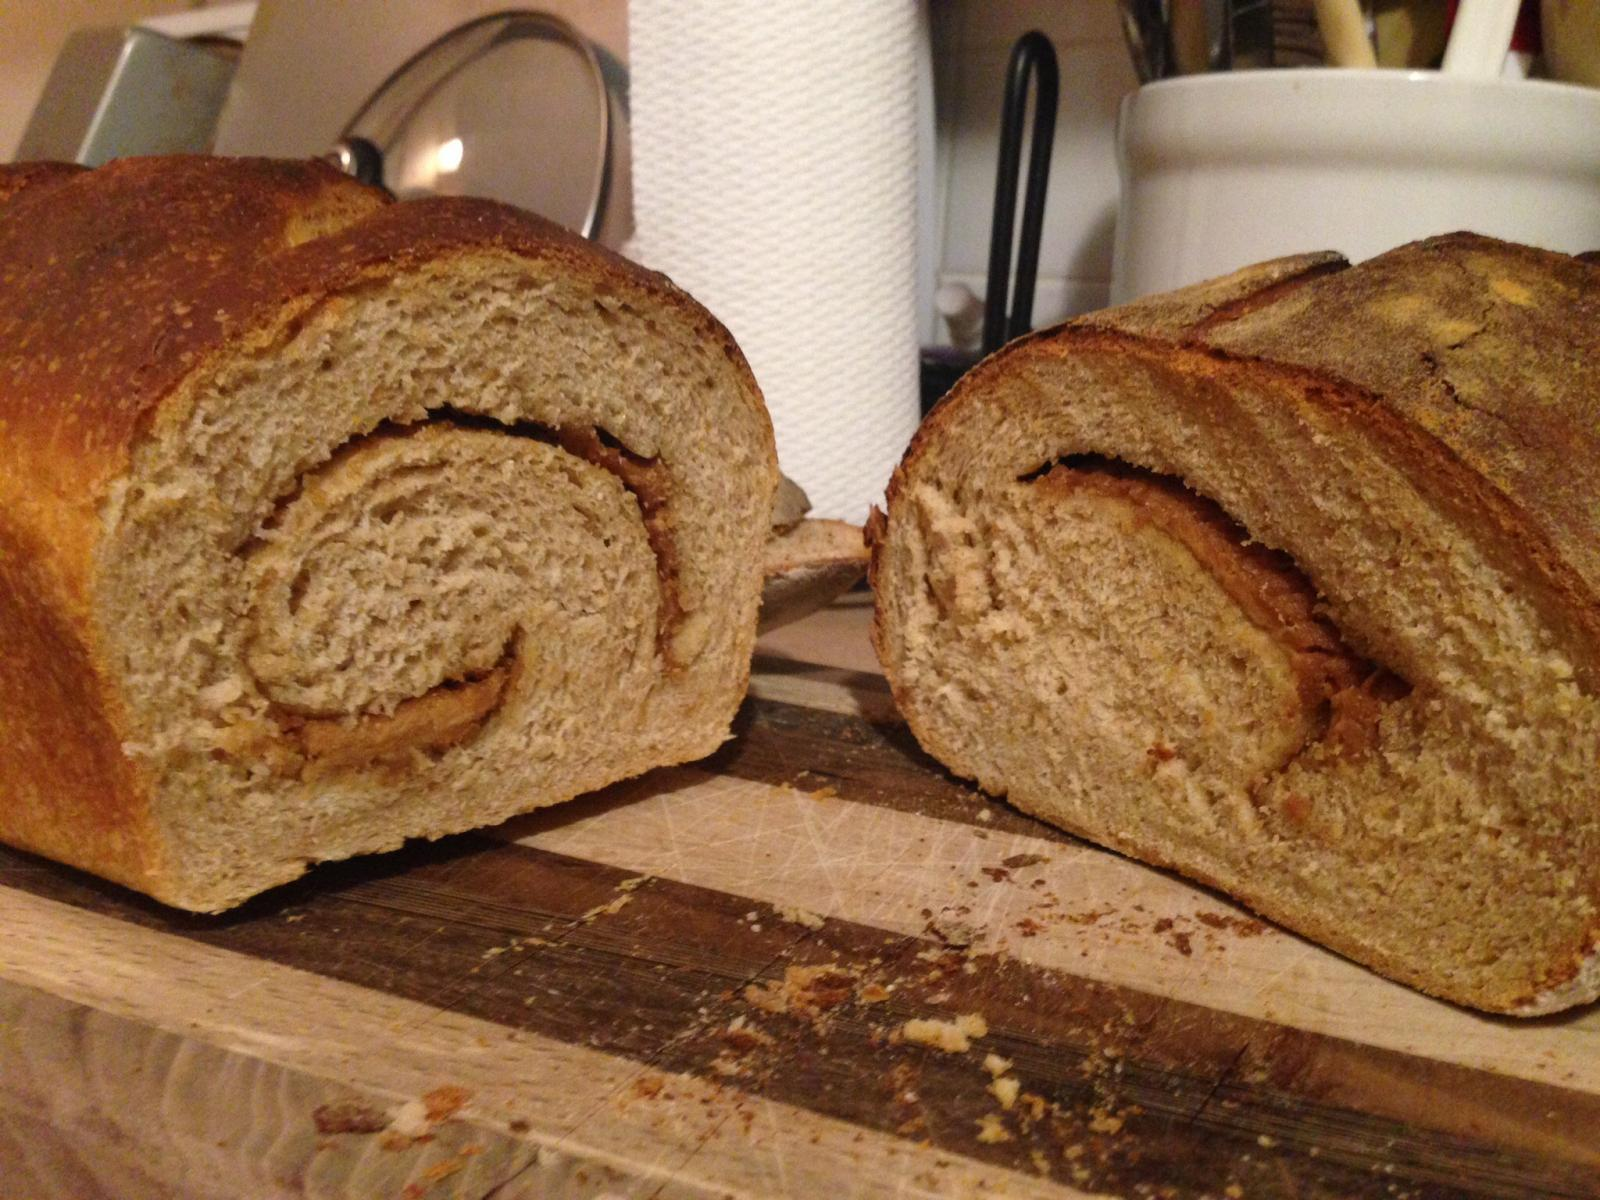 Crumb of first cuts.